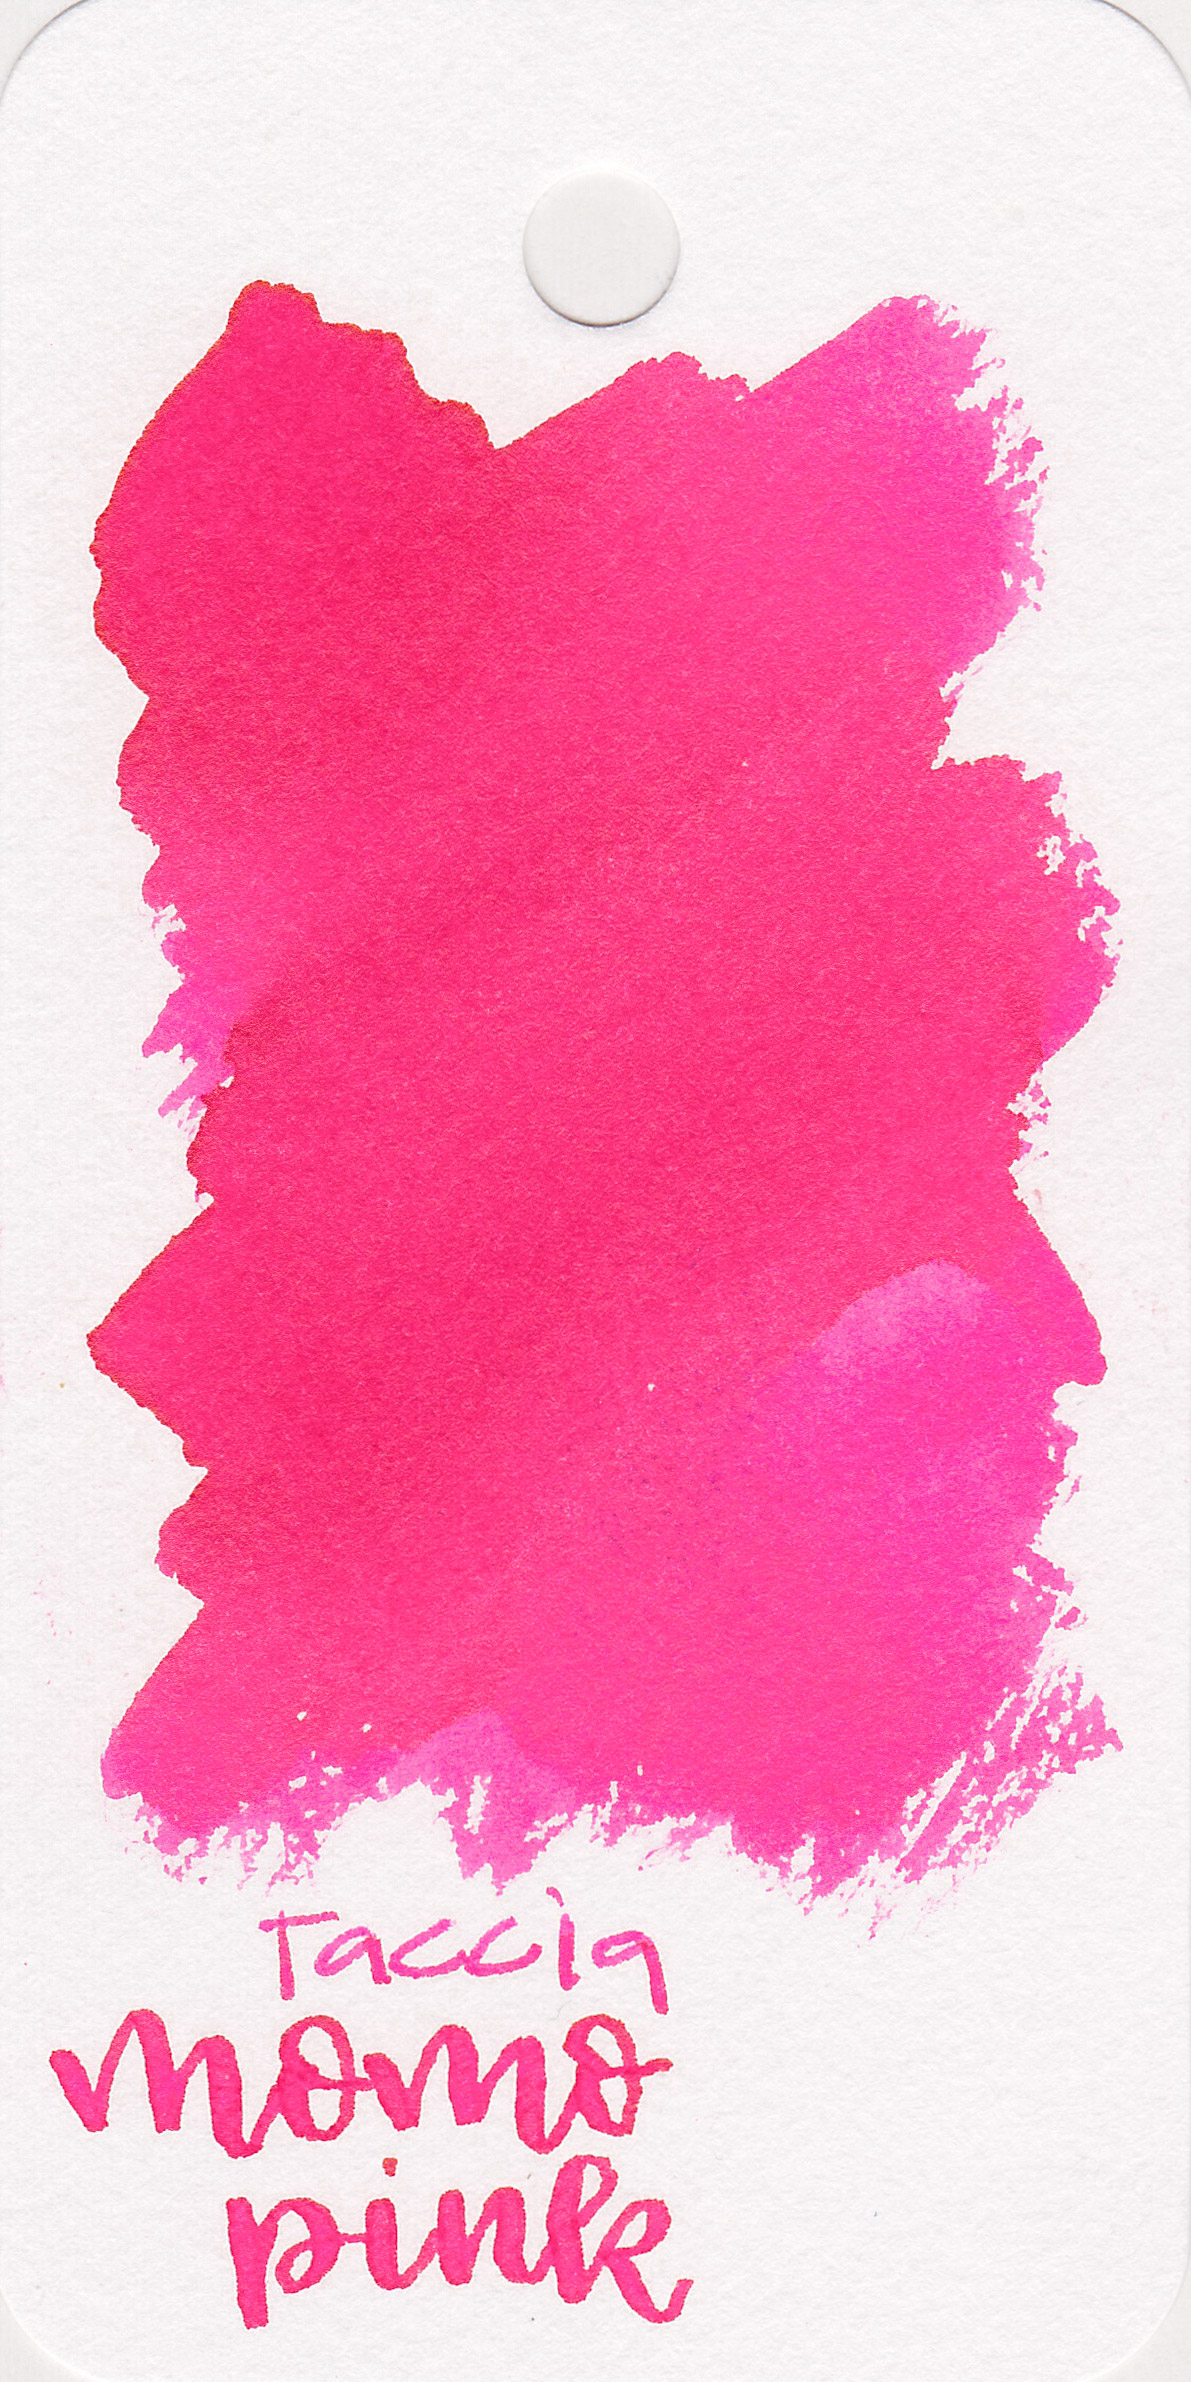 The color: - Momo Pink is a very bright bubblegum pink.